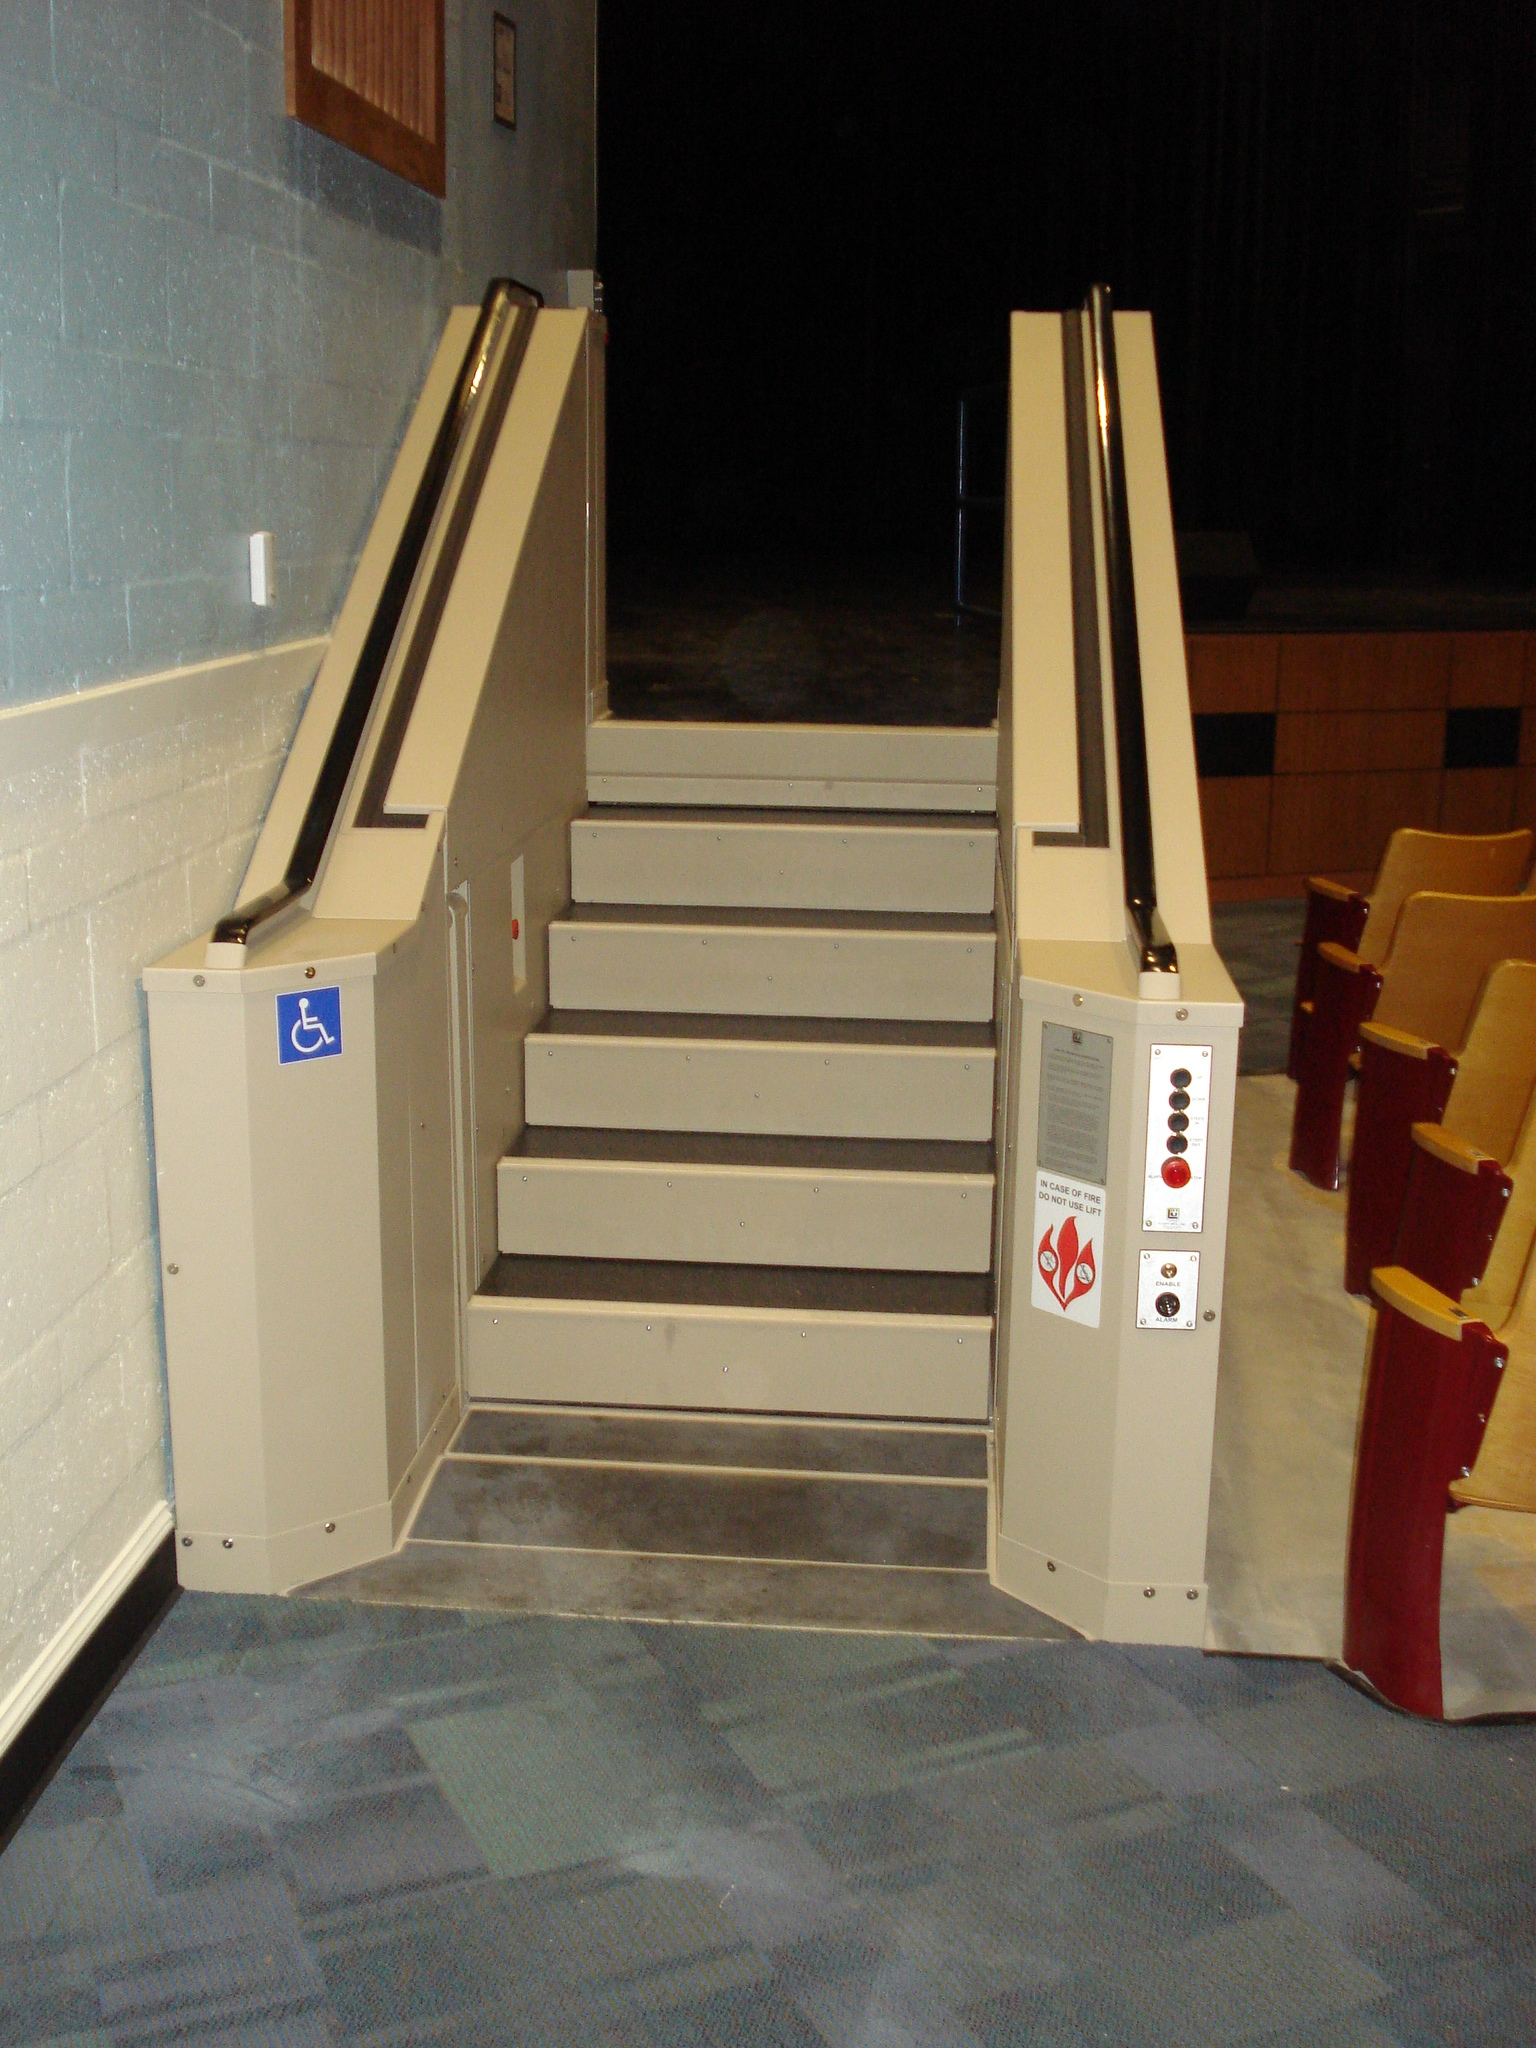 Tan in color. In step position for ambulatory access to stage in auditorium. Lift function readily available, independently operable.